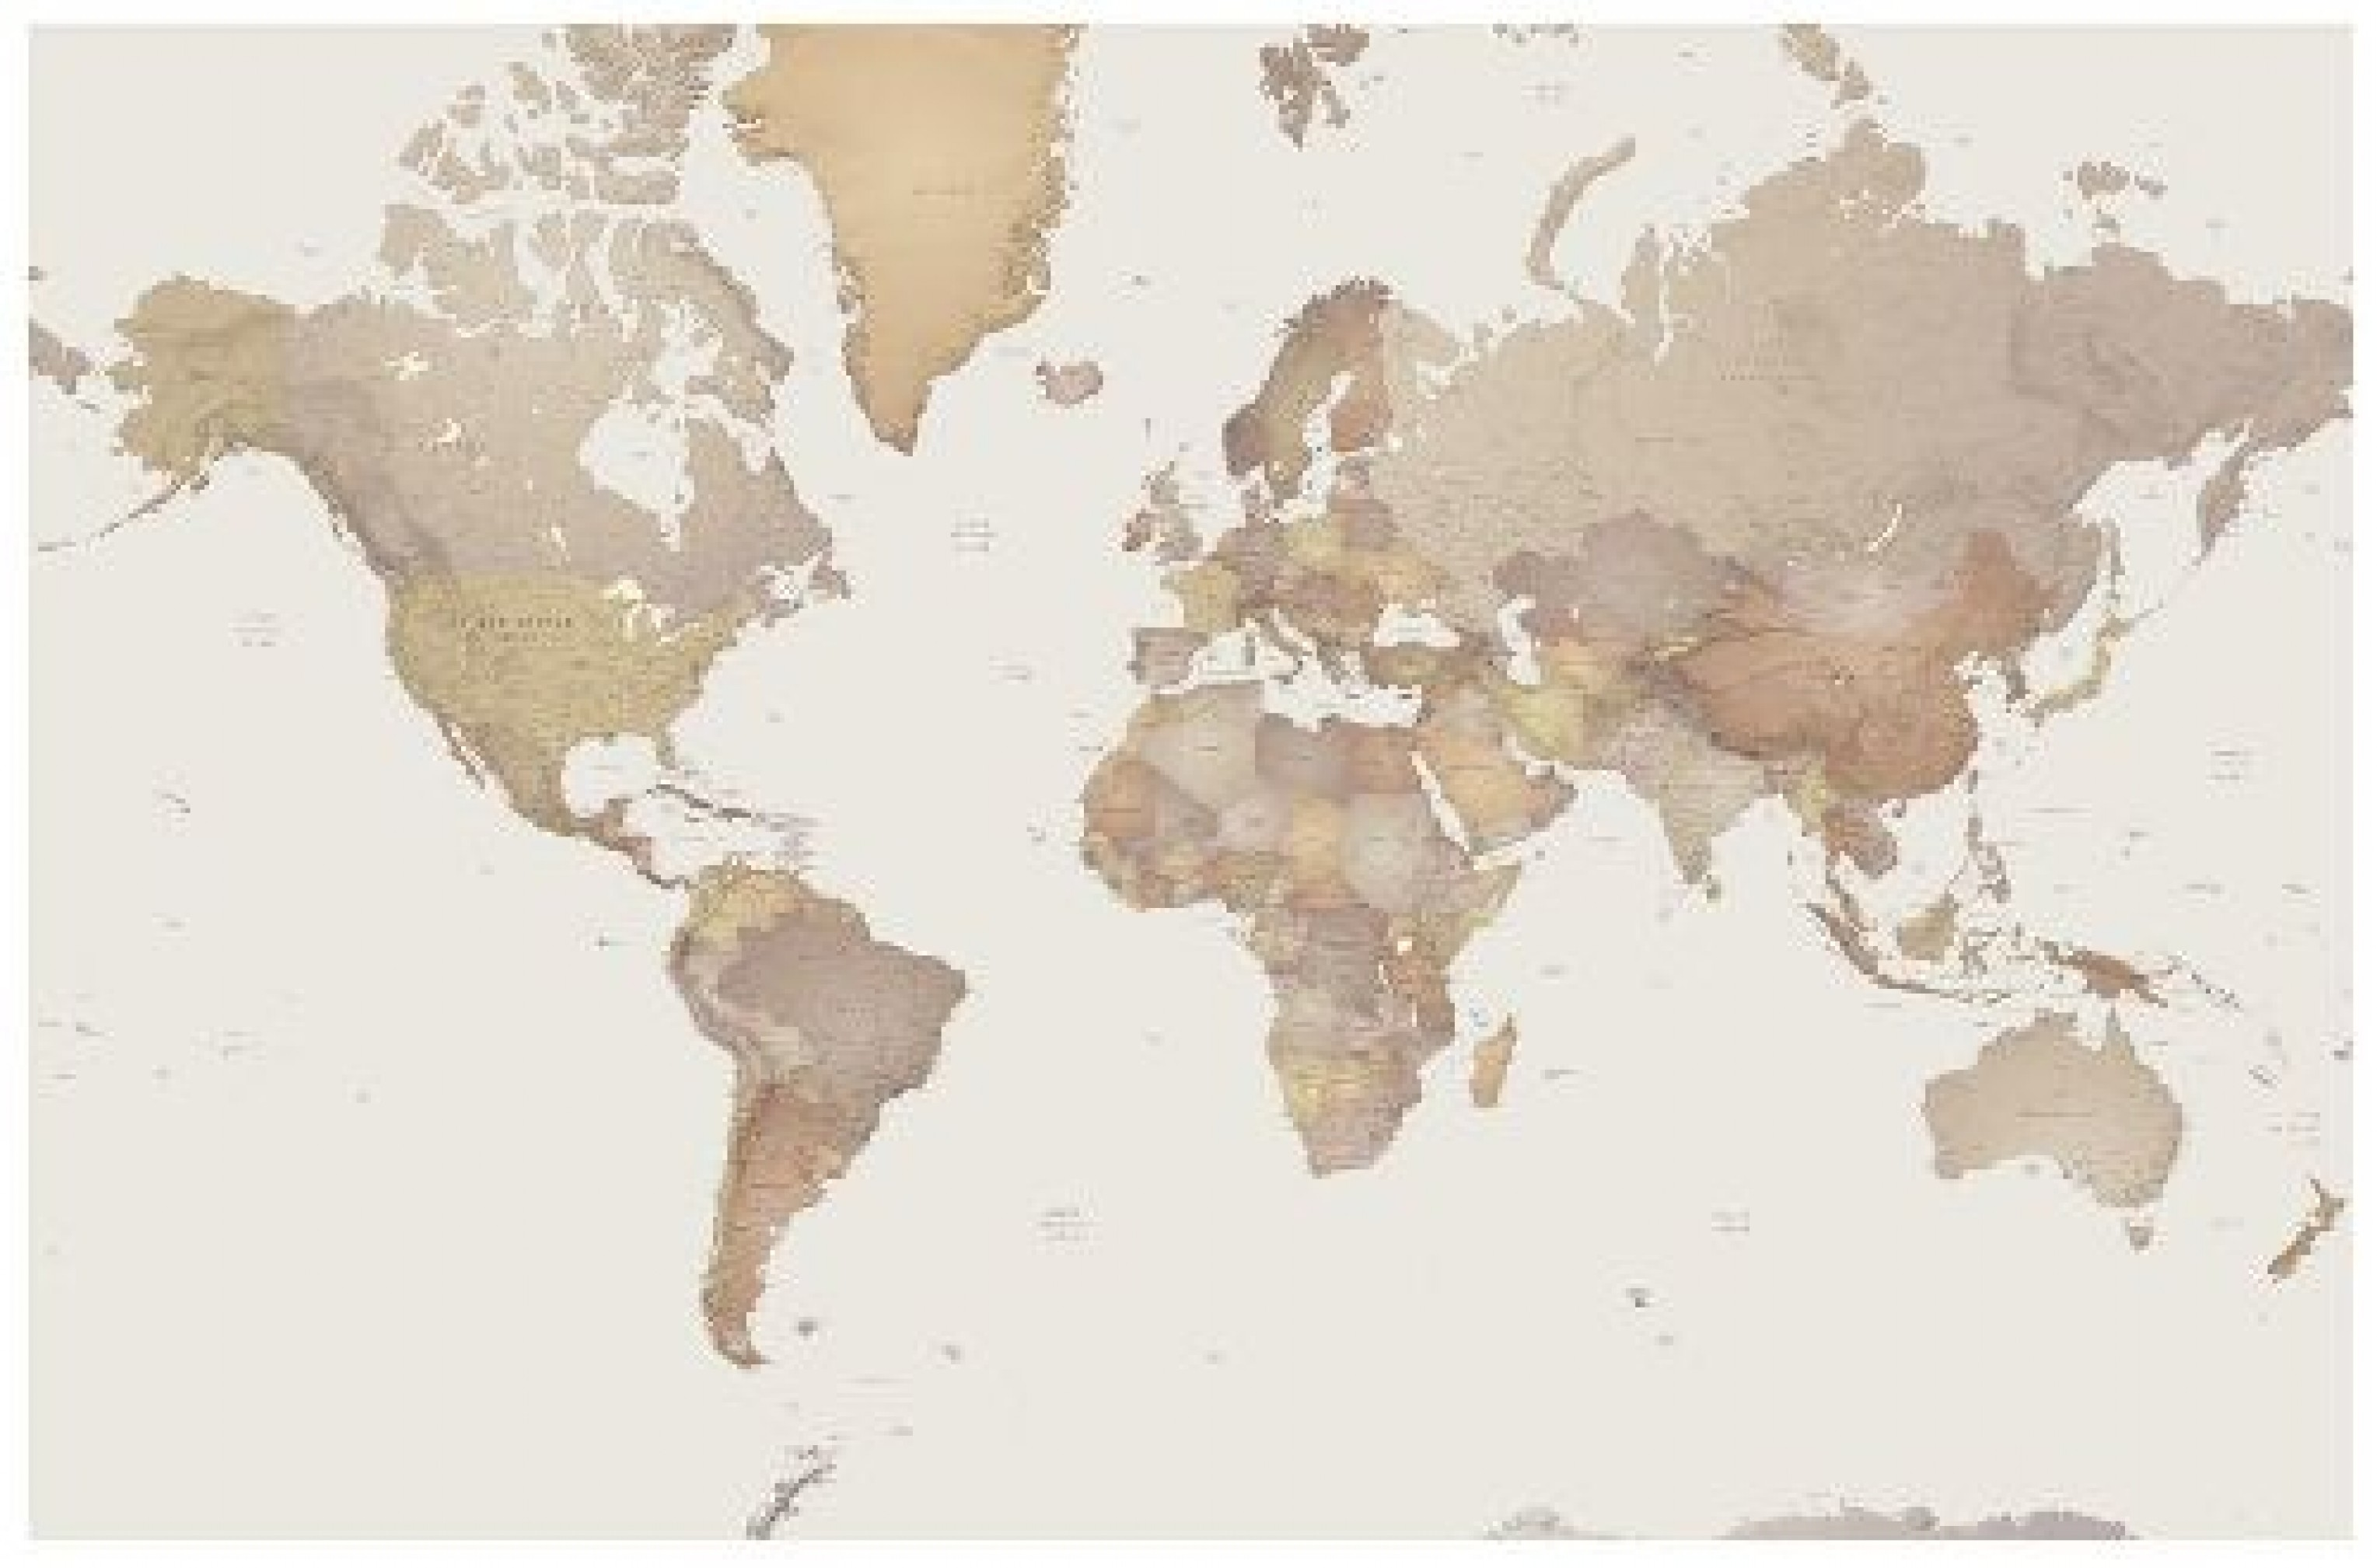 Old world map desktop wallpaper 47 images 1920x1200 travel wallpapers images download 1440x2560 artistic world map gumiabroncs Image collections